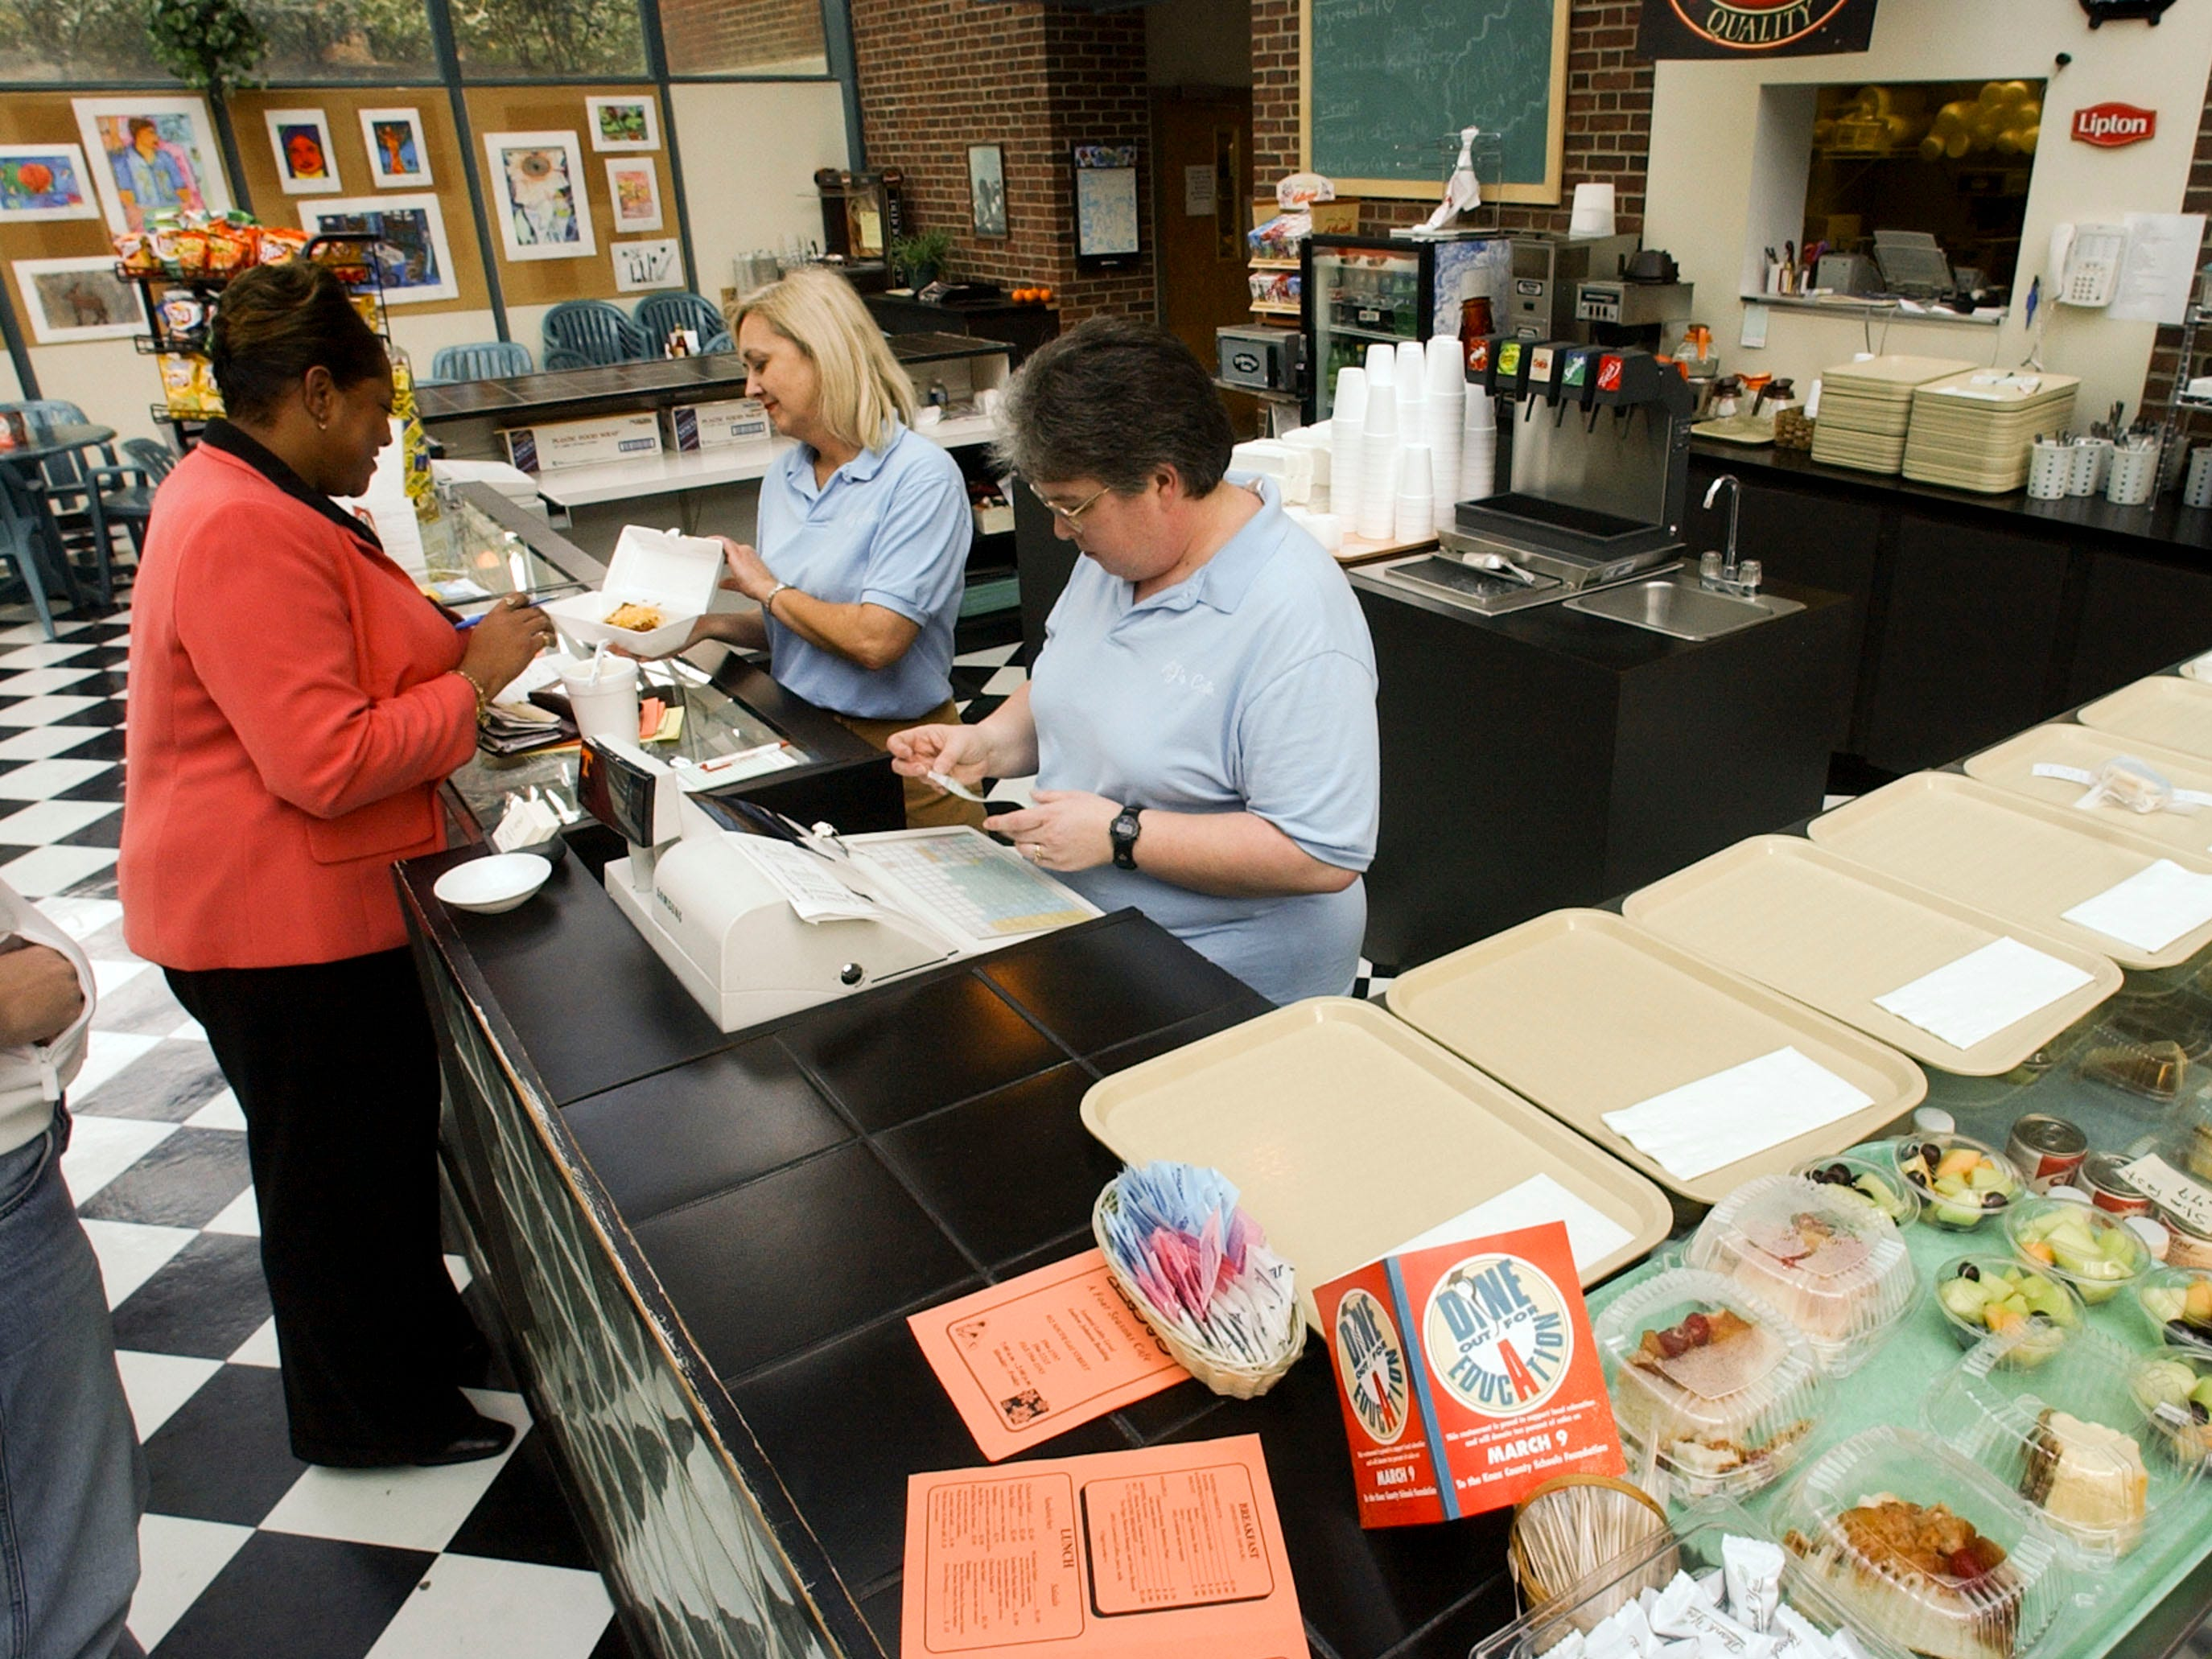 in 2004, A.J.'s a four seasons cafe located off the lobby of the Andrew Johnson Building, is one of  many Knoxville restaurants participating in the Dine Out Day find raising for Knox County School. Customers Sharon Upshaw picks up her lunch order from A.J.'s manager Darlene Harvey while assistant manager Laura Bennett works the cash register.